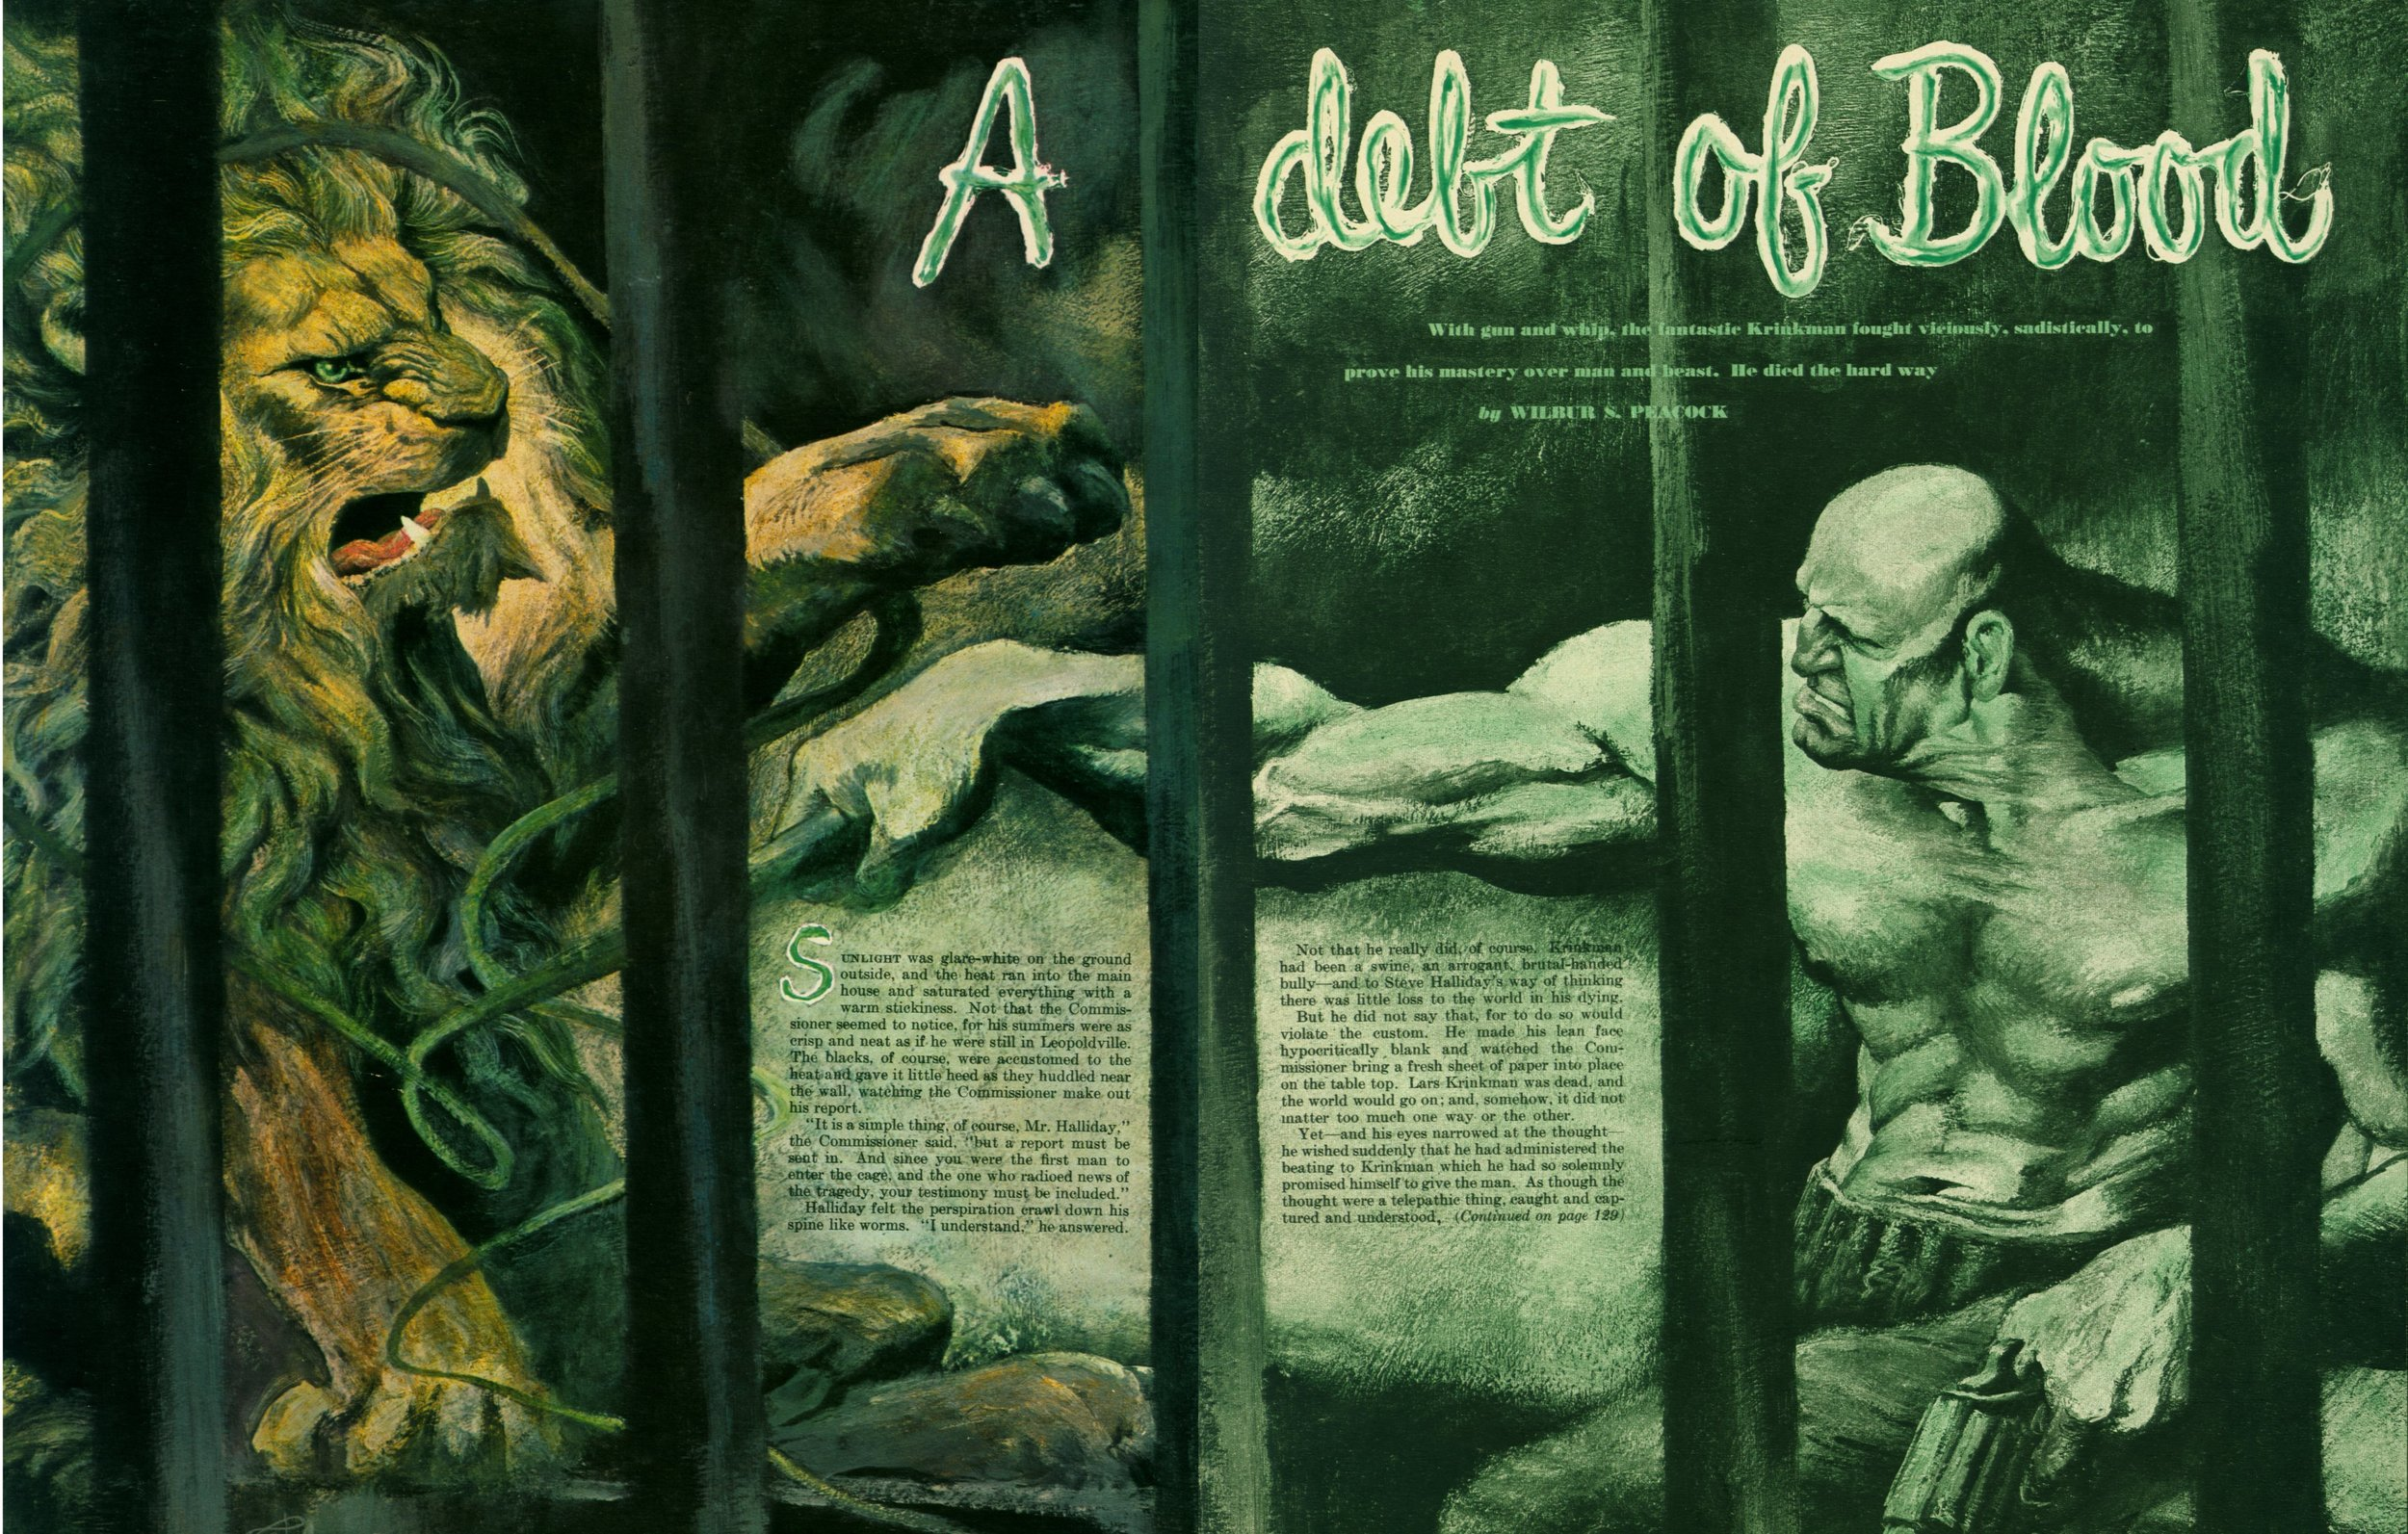 May 1951 - A Debt of Blood